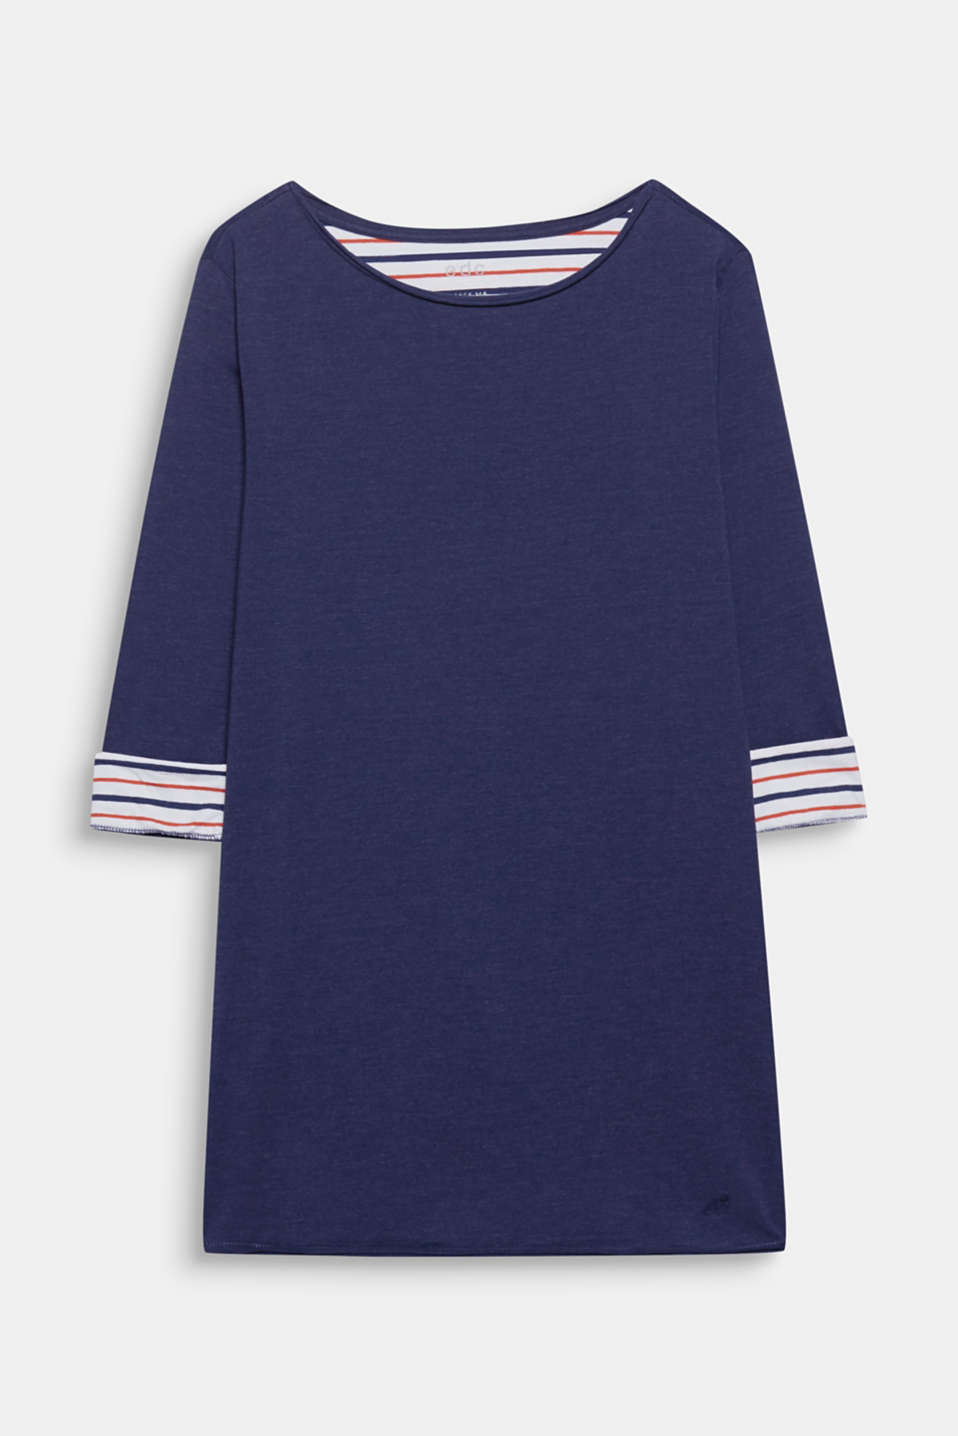 This long sleeve top in soft jersey with a flared silhouette and striped details is a casual, comfy style!